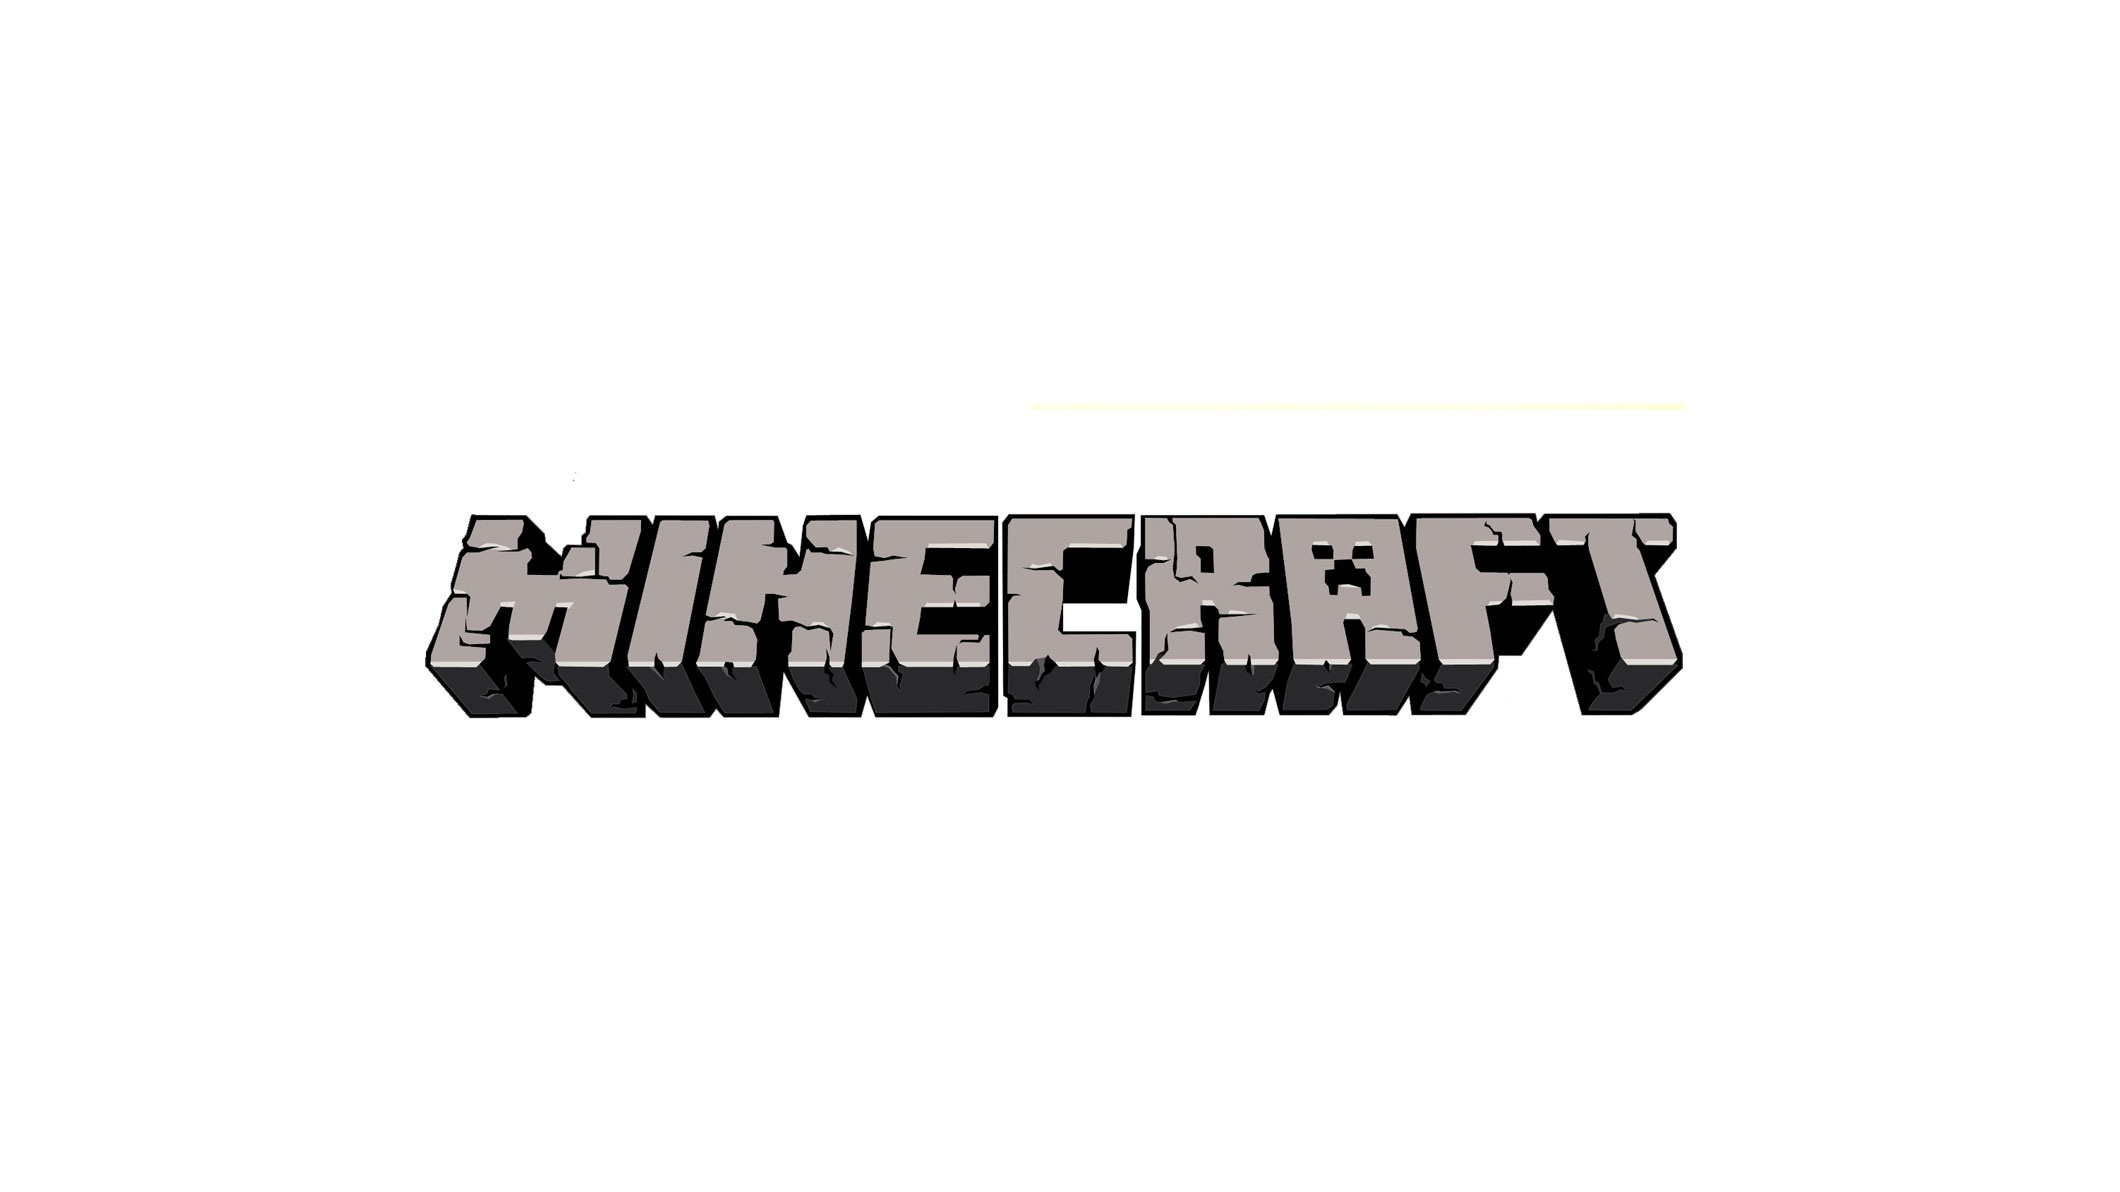 Why I Ll Never Whistle Minecraft S Music On The Way To Work Last Token Gaming